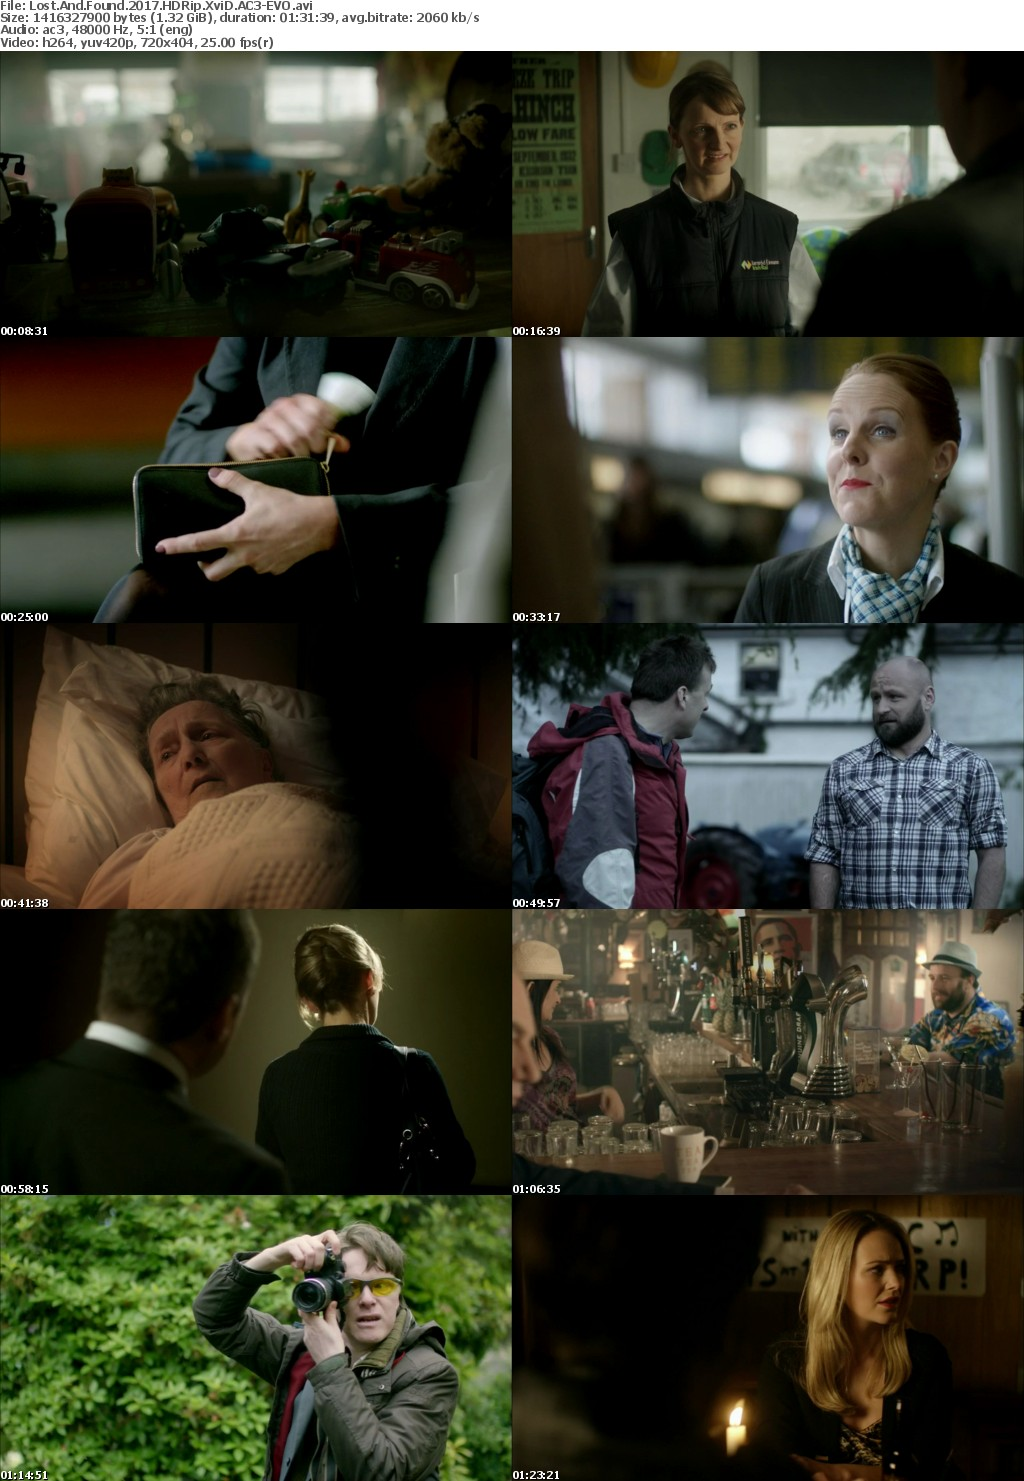 Lost And Found (2017) HDRip XviD AC3-EVO